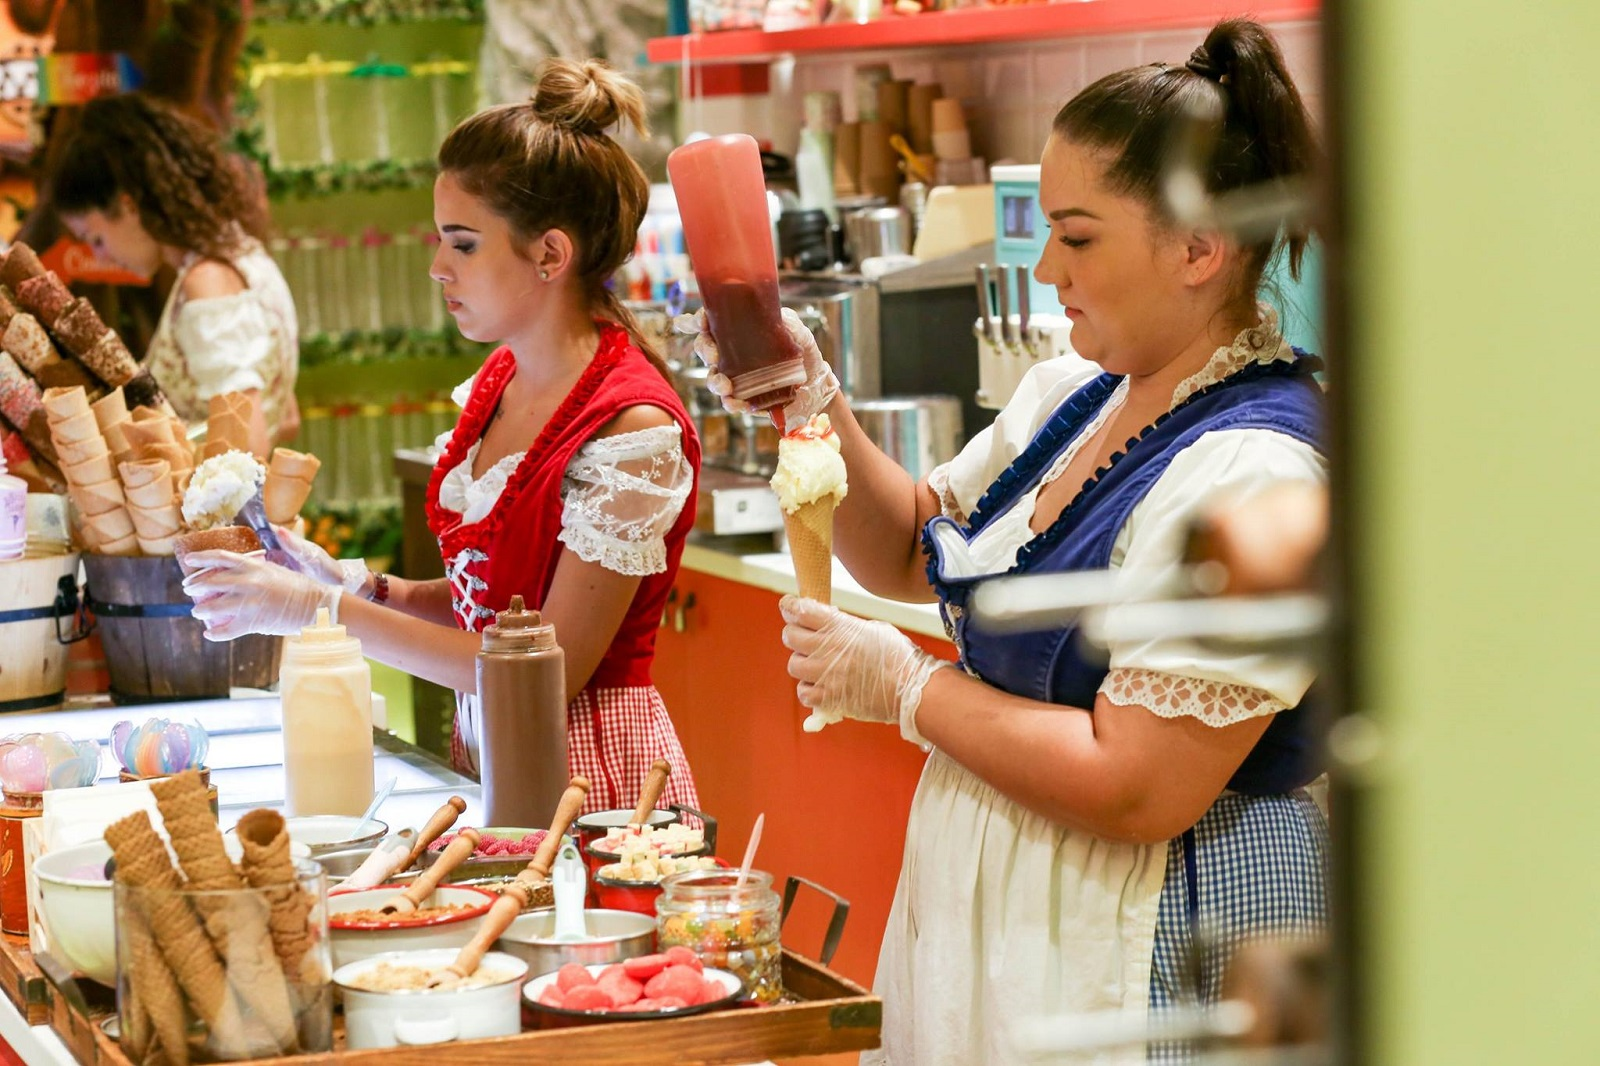 Visit Hans & Gretel gelateria in Monastiraki and travel to a fairy land made out of sugar!